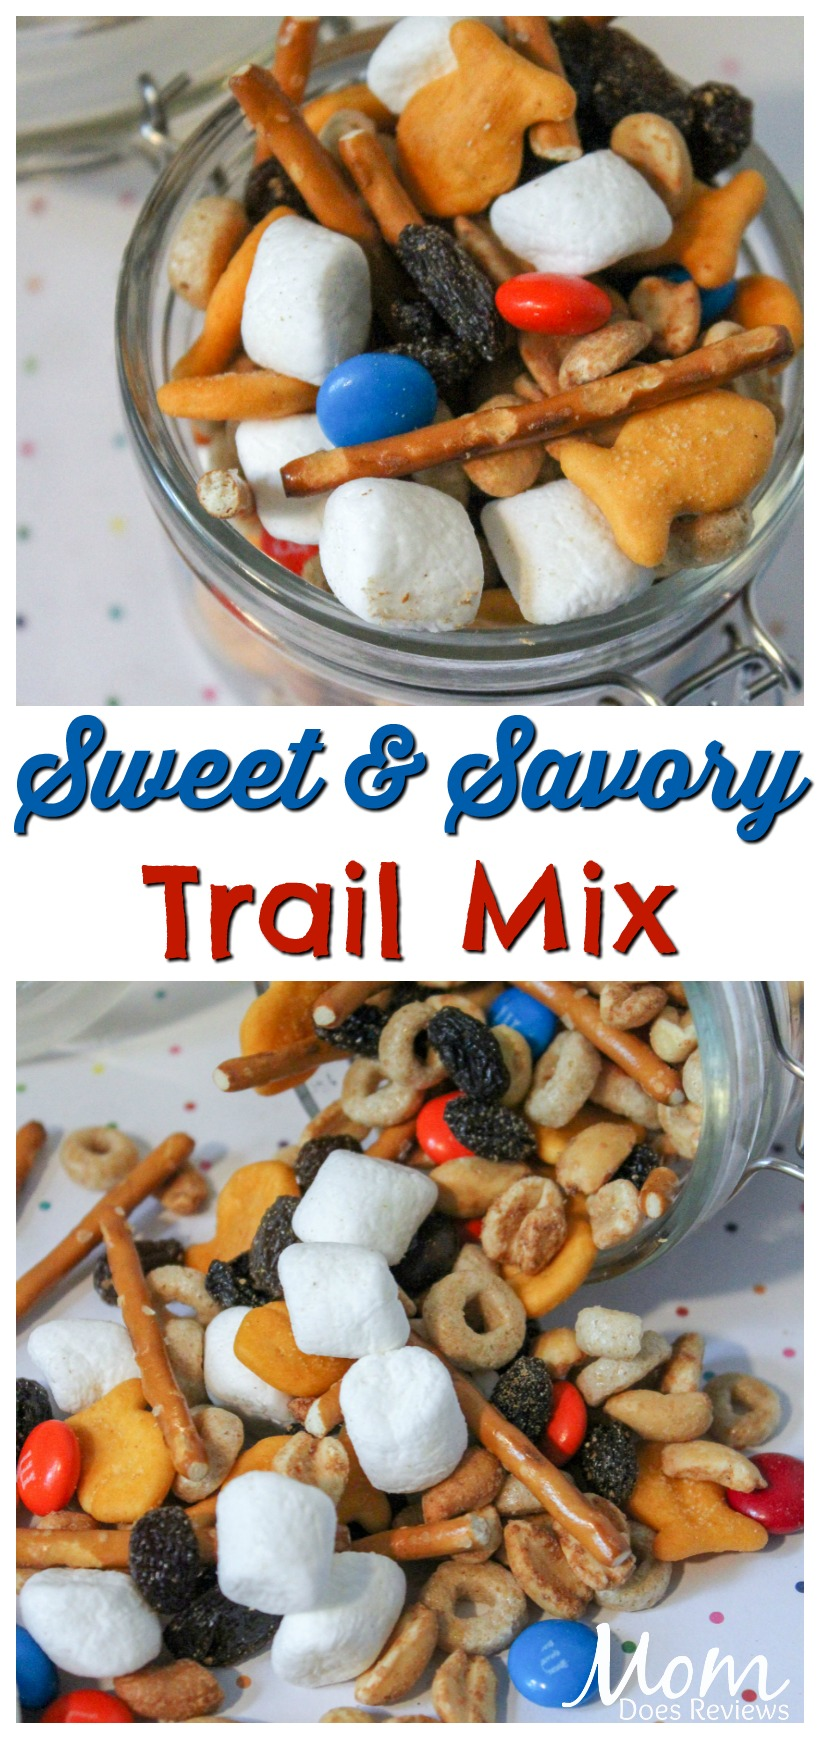 Sweet and Savory Trail Mix #recipe #diy #snacks #foodie